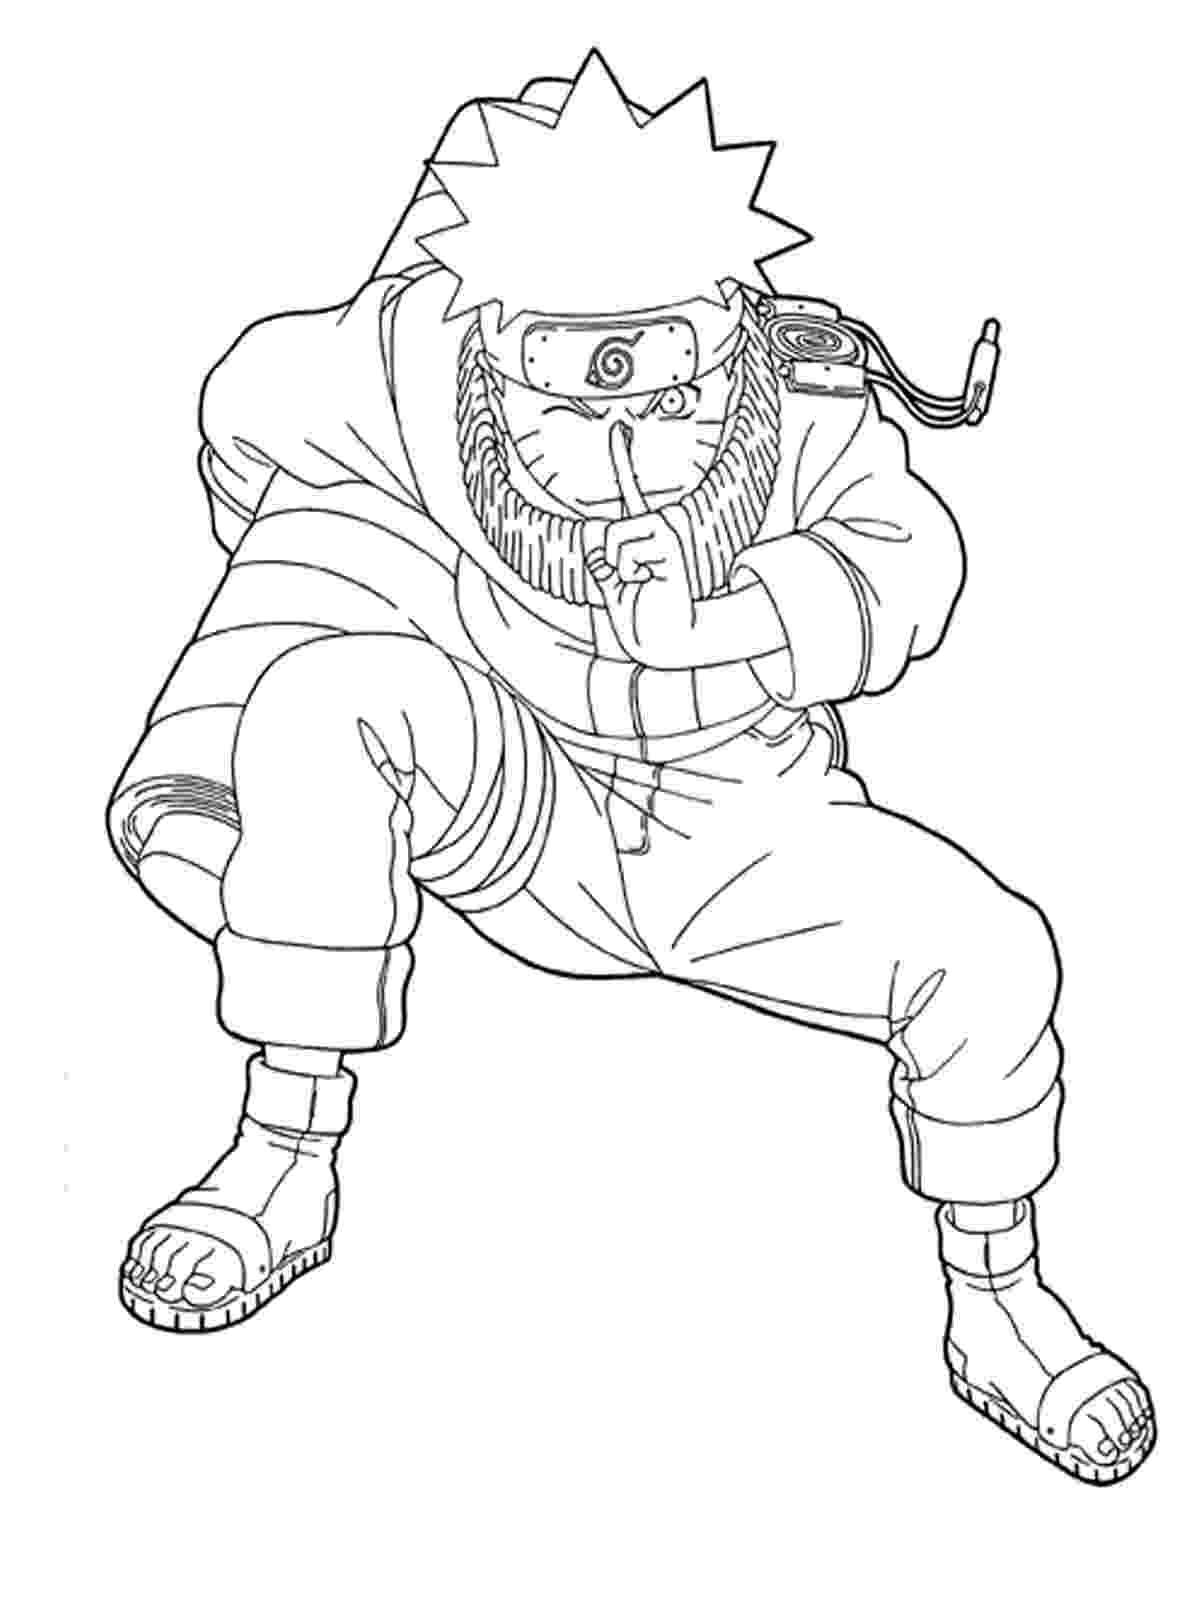 naruto color pages printable naruto coloring pages to get your kids occupied pages naruto color